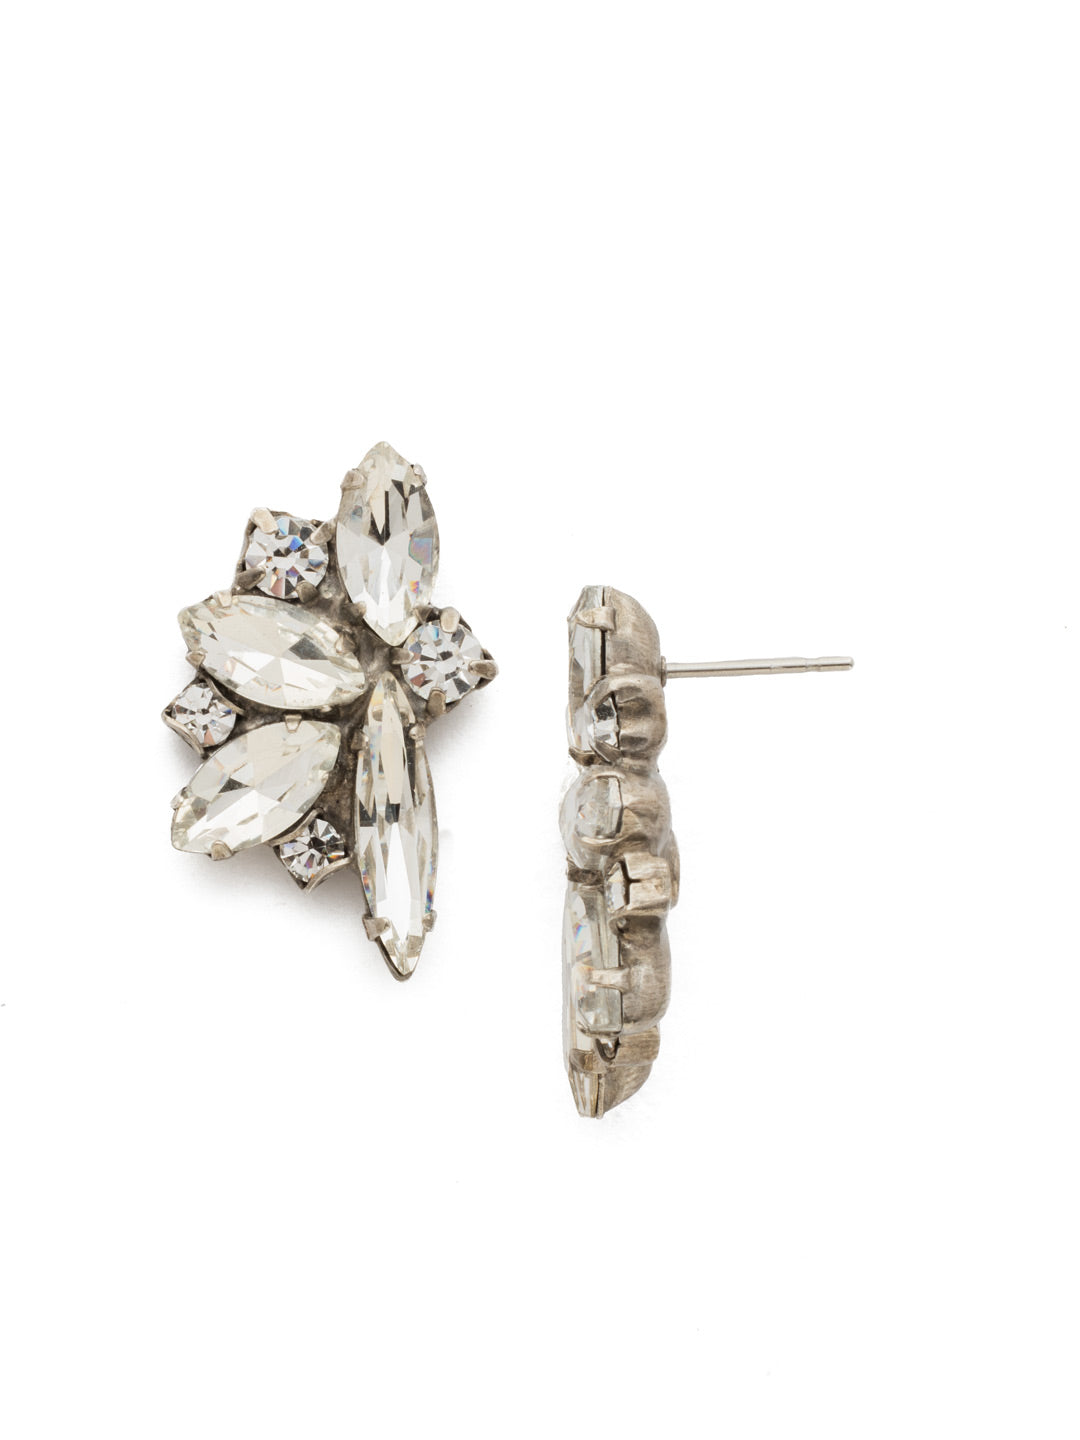 Fanned Navette Crystal Post Earring - ECZ21ASCRY